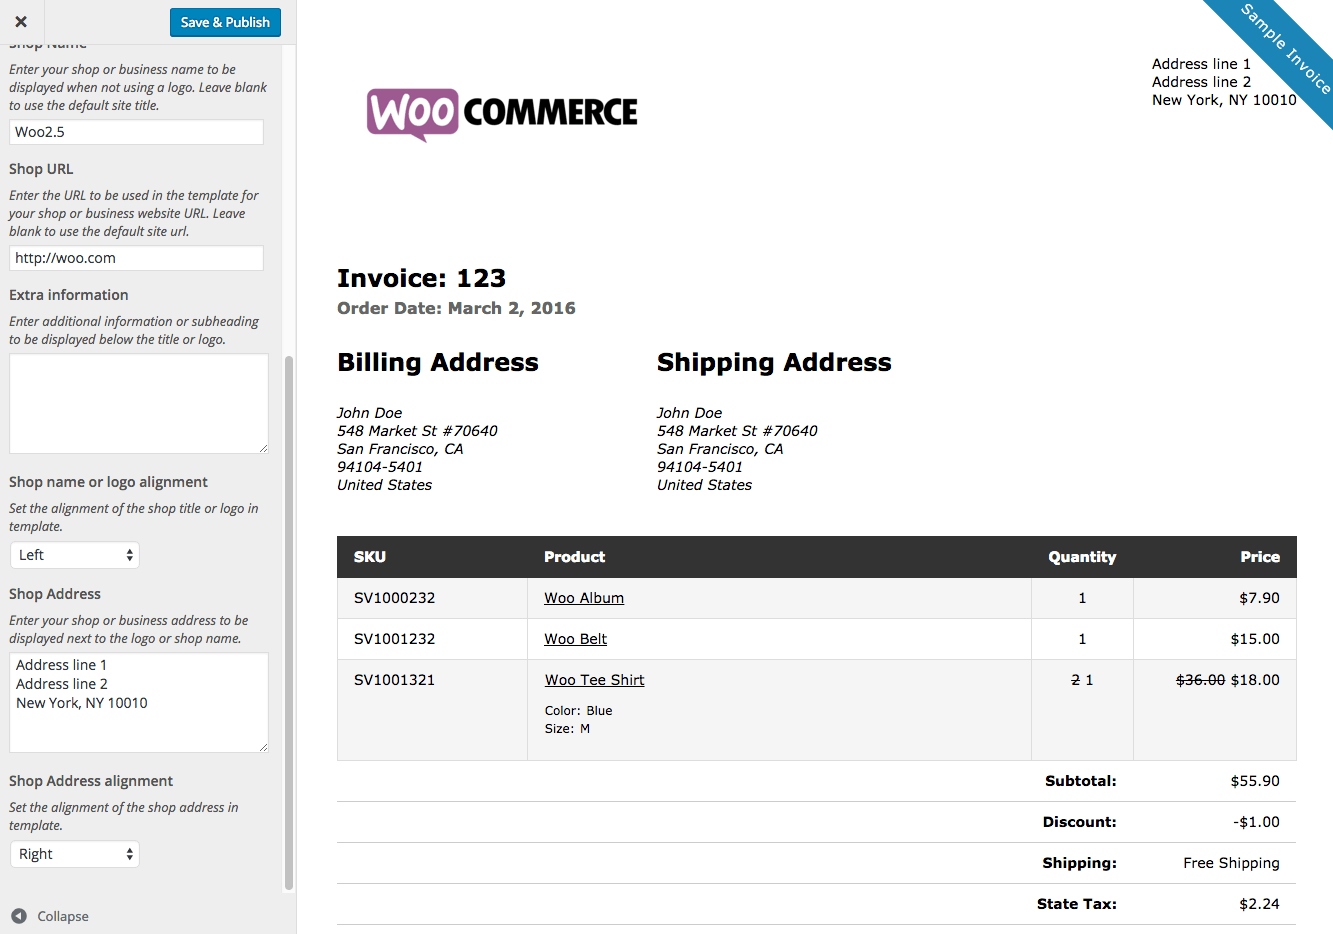 Hius  Pleasant Print Invoices Amp Packing Lists  Woocommerce With Exquisite Woocommerce Print Invoices  Packing Lists Customizer With Nice We Are In Receipt Of Your Payment Also Track Package With Receipt Number In Addition Upon Receipt Meaning And National Car Rental Receipts As Well As Receipt Bill Of Sale Additionally Request Read Receipt From Woocommercecom With Hius  Exquisite Print Invoices Amp Packing Lists  Woocommerce With Nice Woocommerce Print Invoices  Packing Lists Customizer And Pleasant We Are In Receipt Of Your Payment Also Track Package With Receipt Number In Addition Upon Receipt Meaning From Woocommercecom